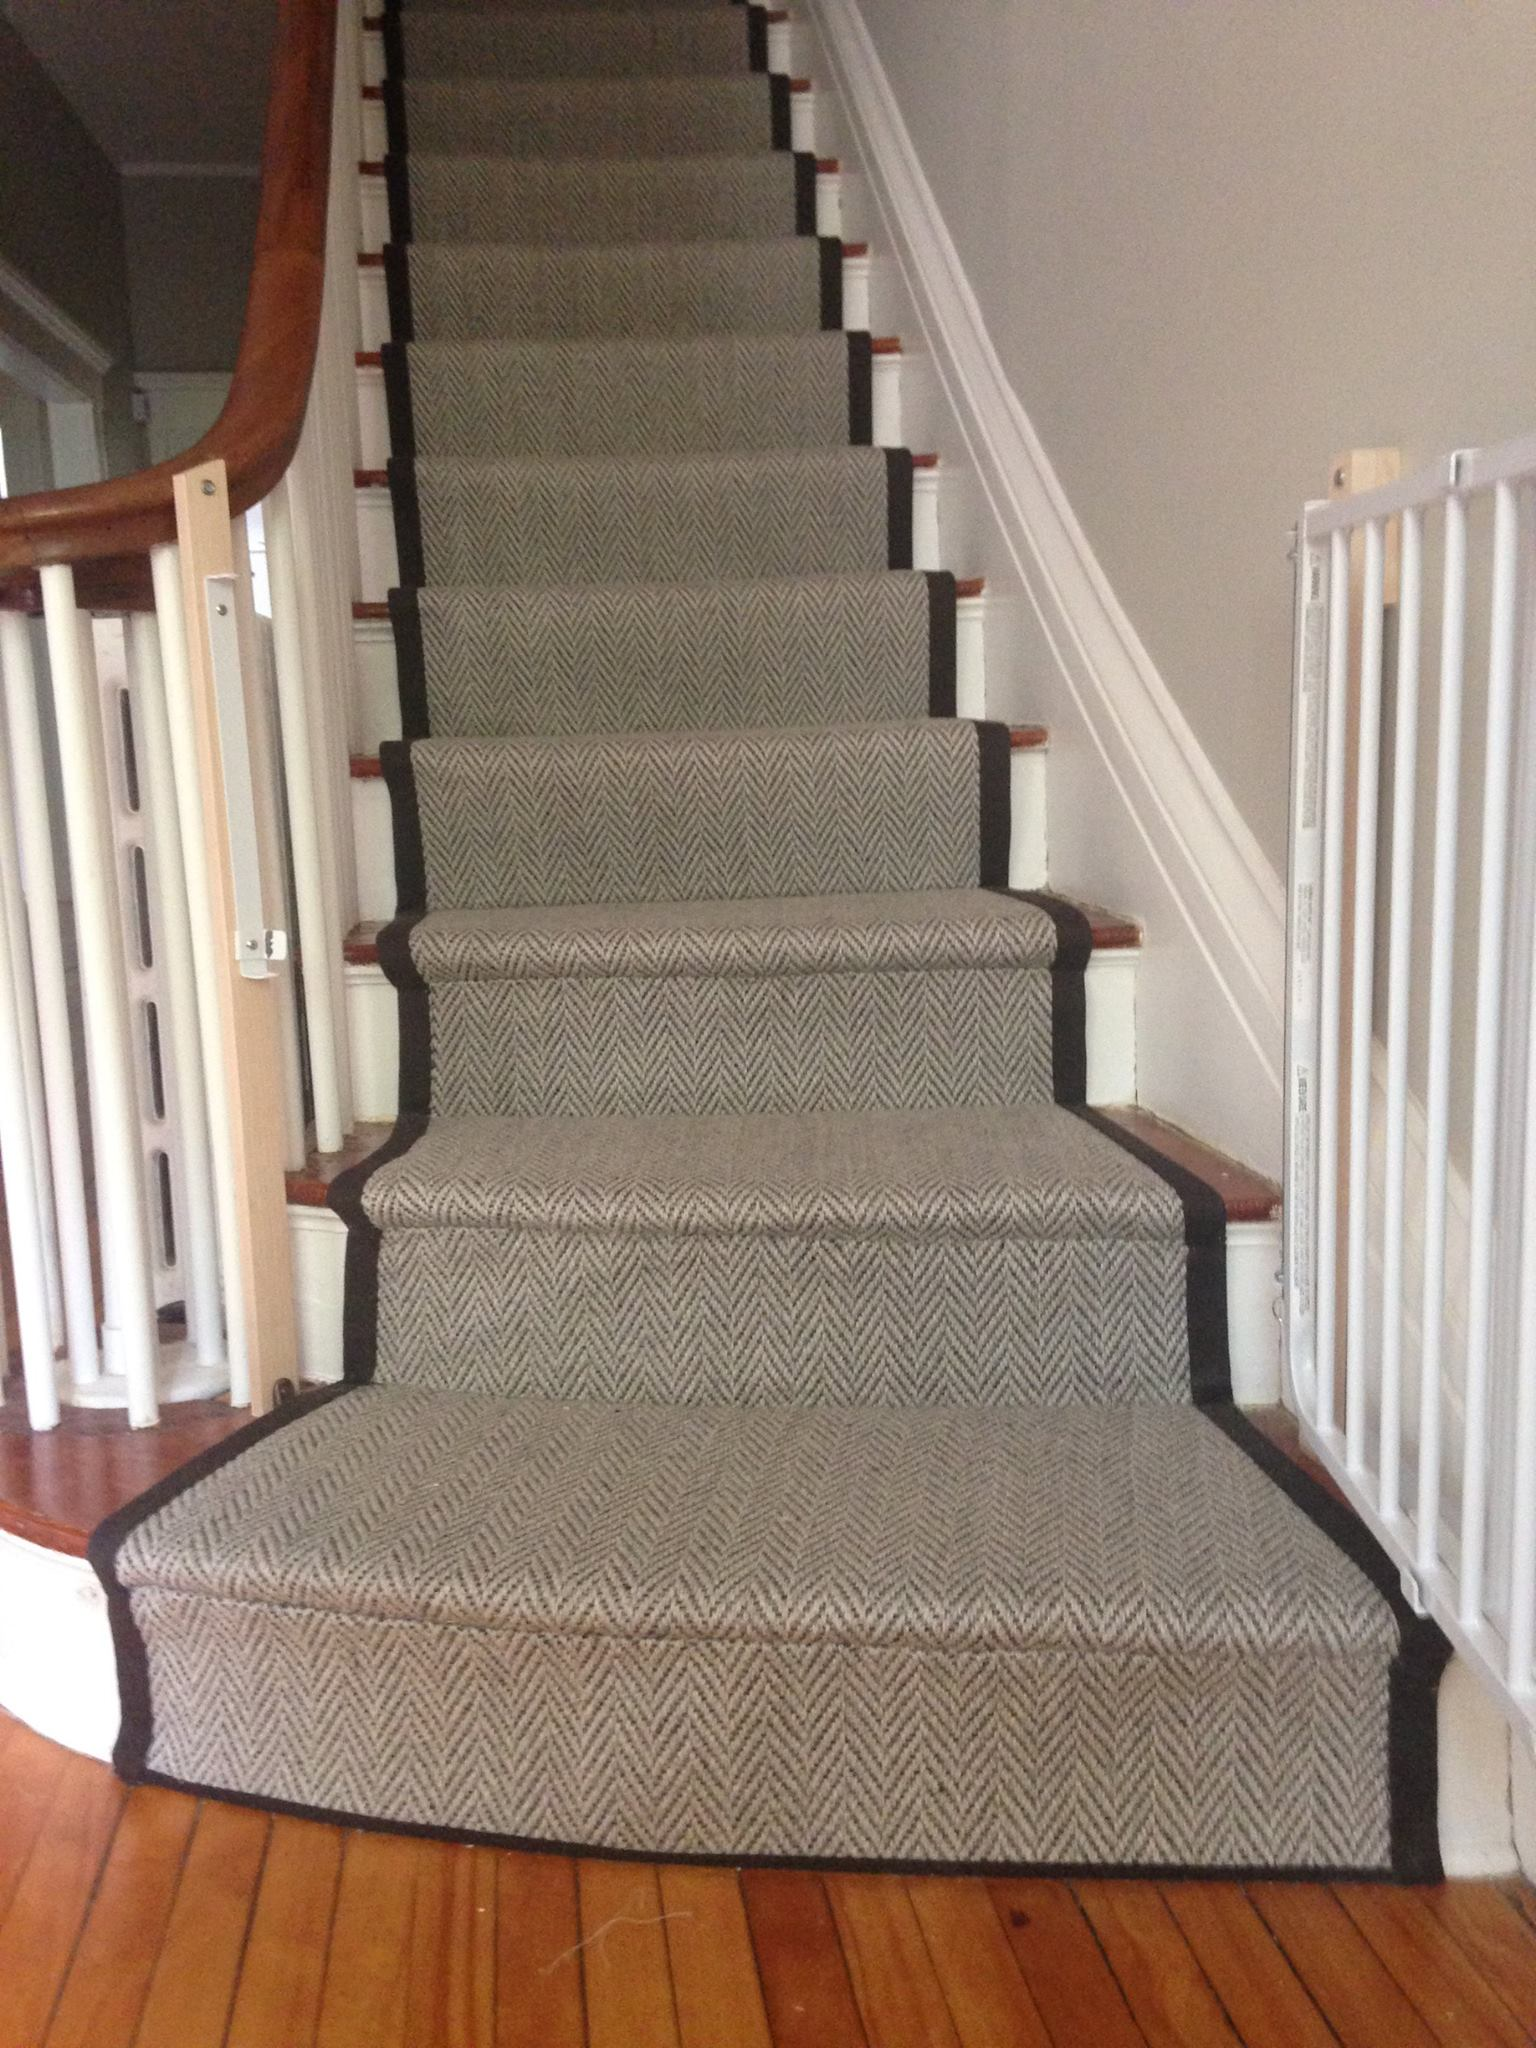 Herringbone Flat Weave Carpet Crafted And Installed By The Carpet Workroom